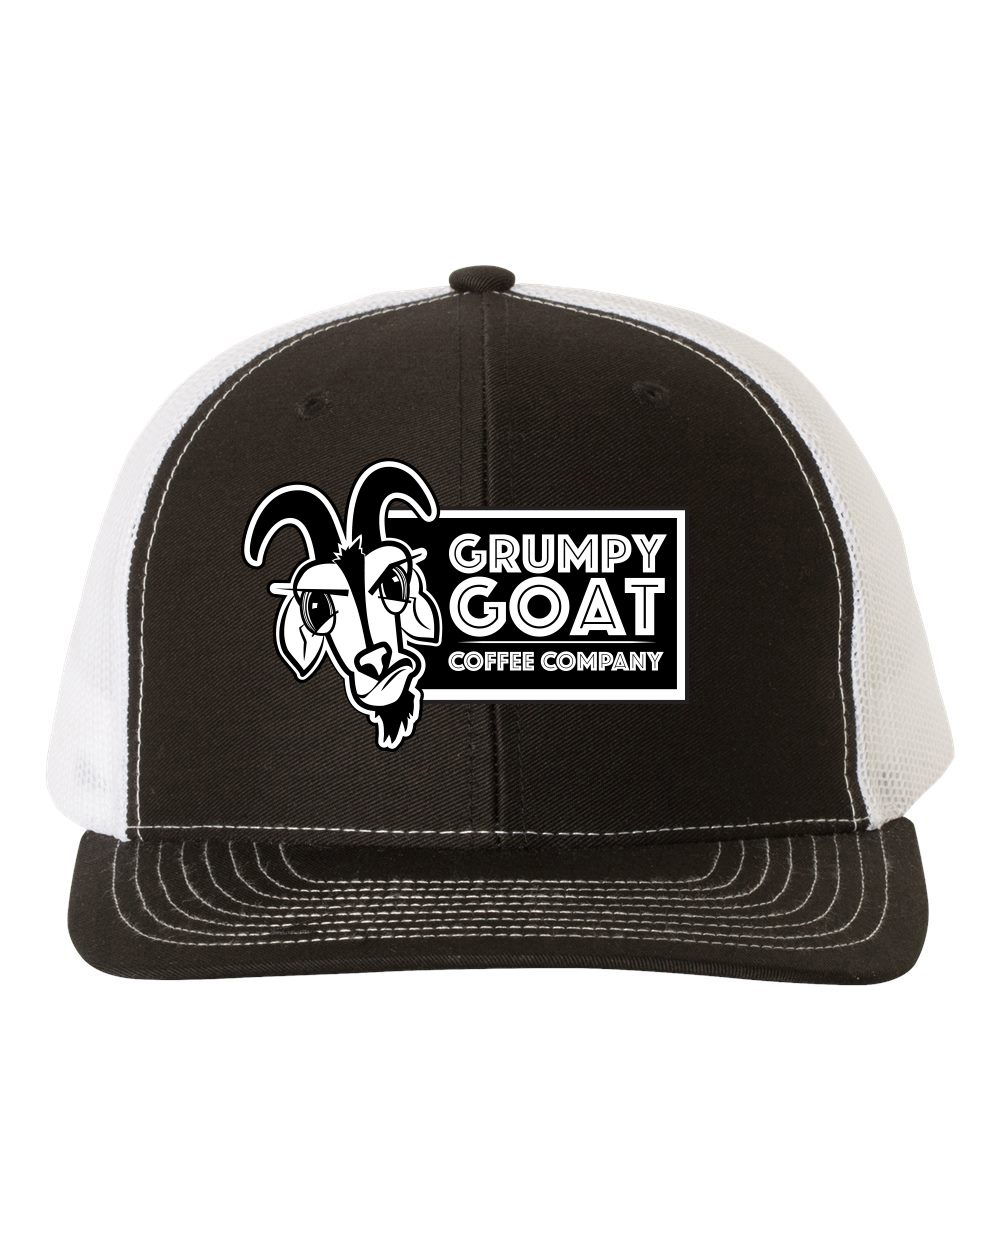 Grumpy Goat Black Trucker Hat with White Mesh